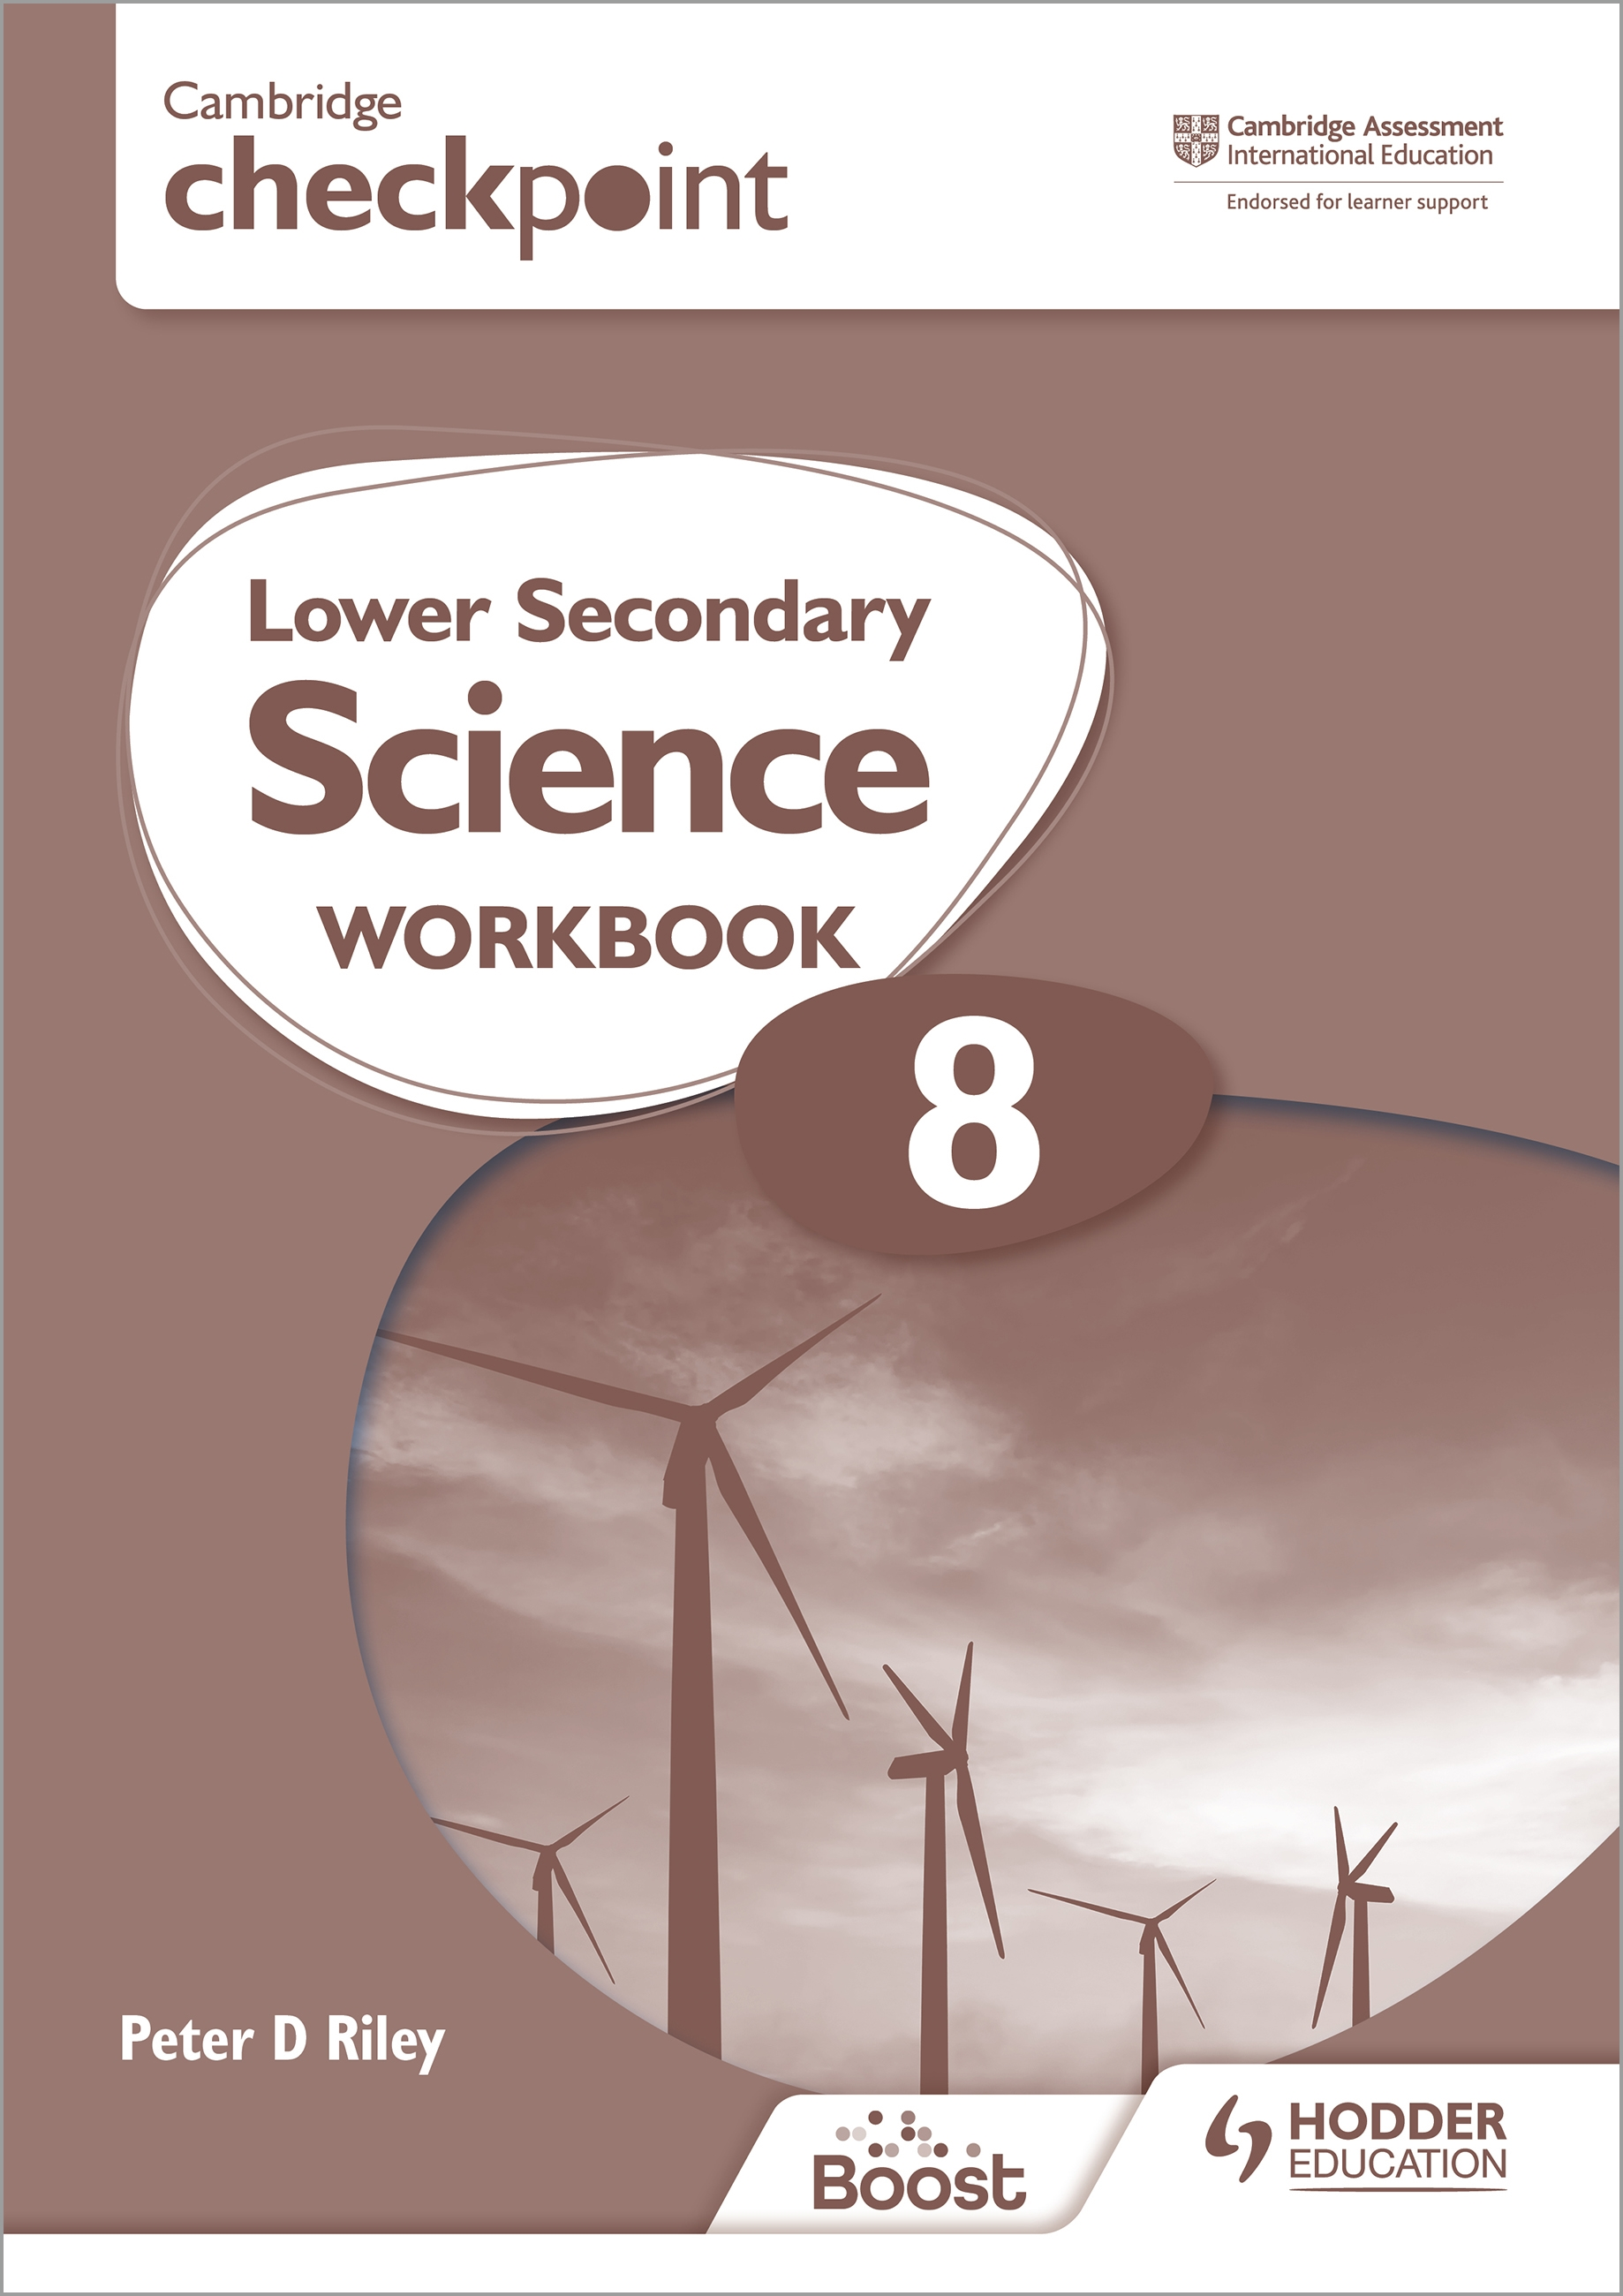 Cambridge Checkpoint Lower Secondary Science Workbook 8 : Second Edition